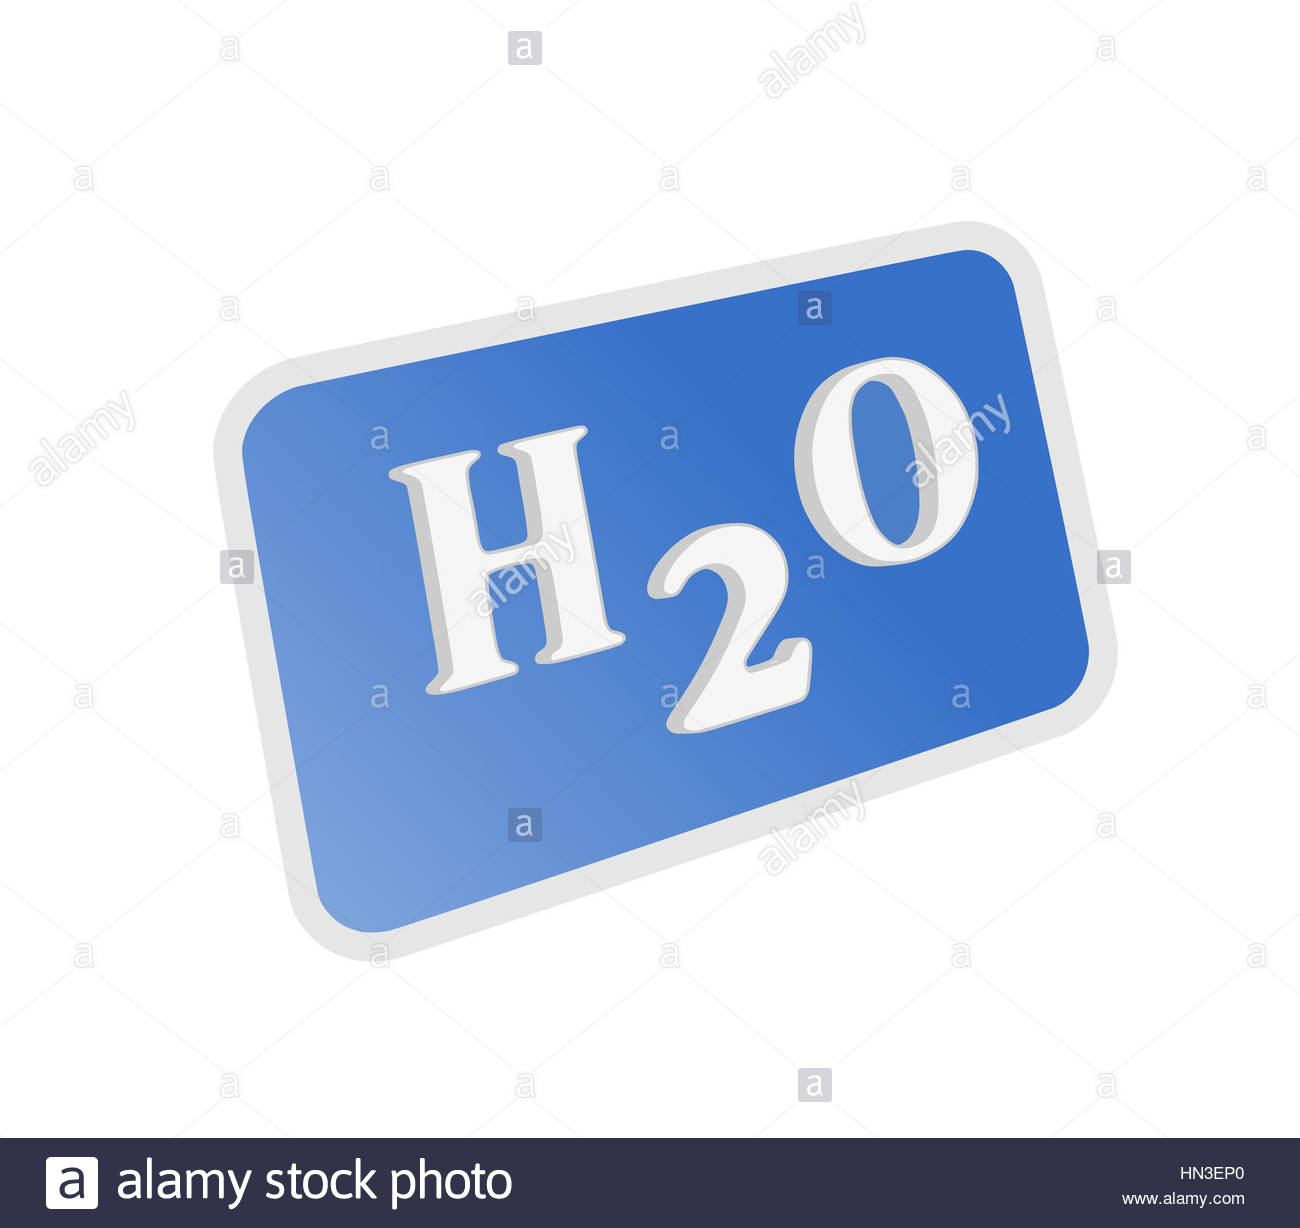 H2o water chemical formula illustration on white background stock h2o water chemical formula illustration on white background buycottarizona Choice Image